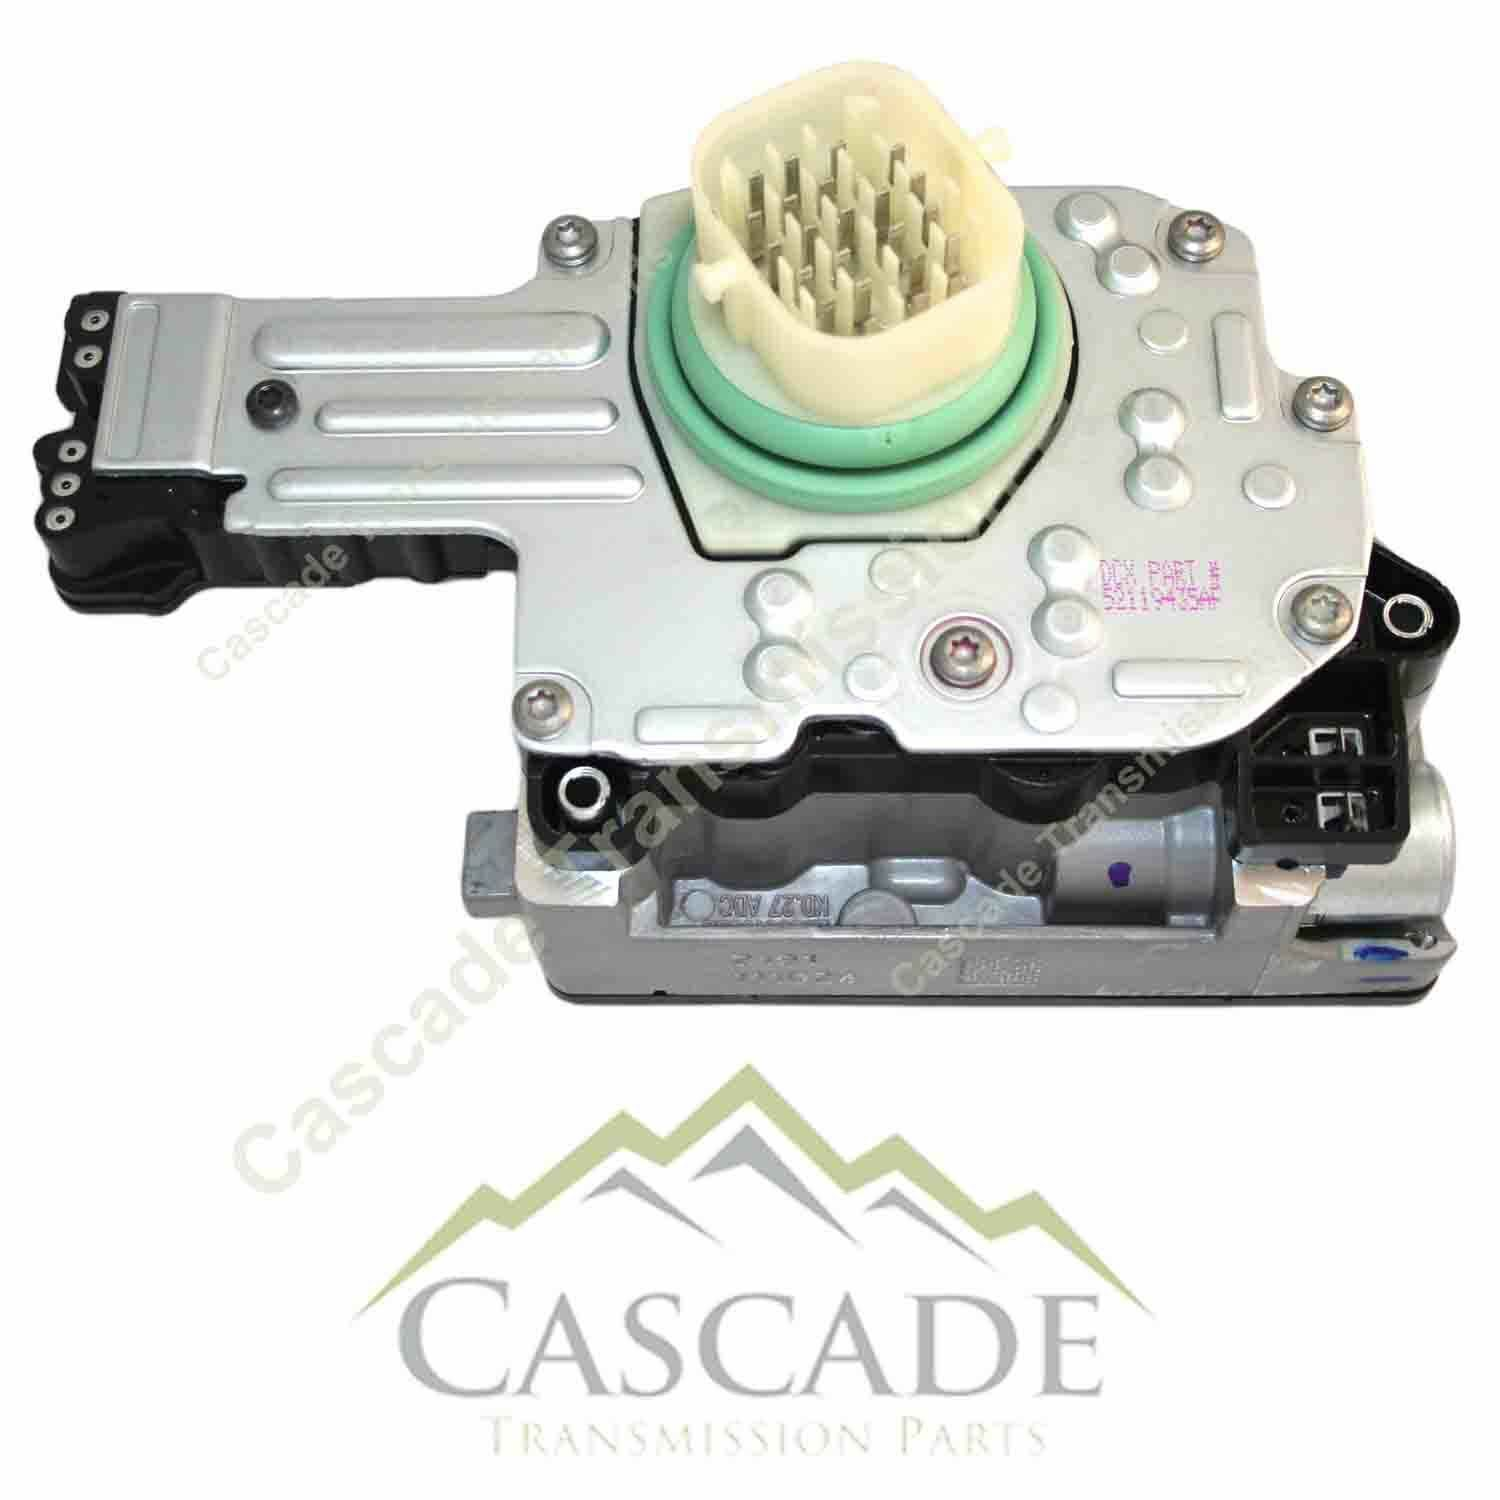 45rfe solenoid automatic transmission parts transmission solenoid block pack updated design oem new 45rfe 545rfe 68rfe